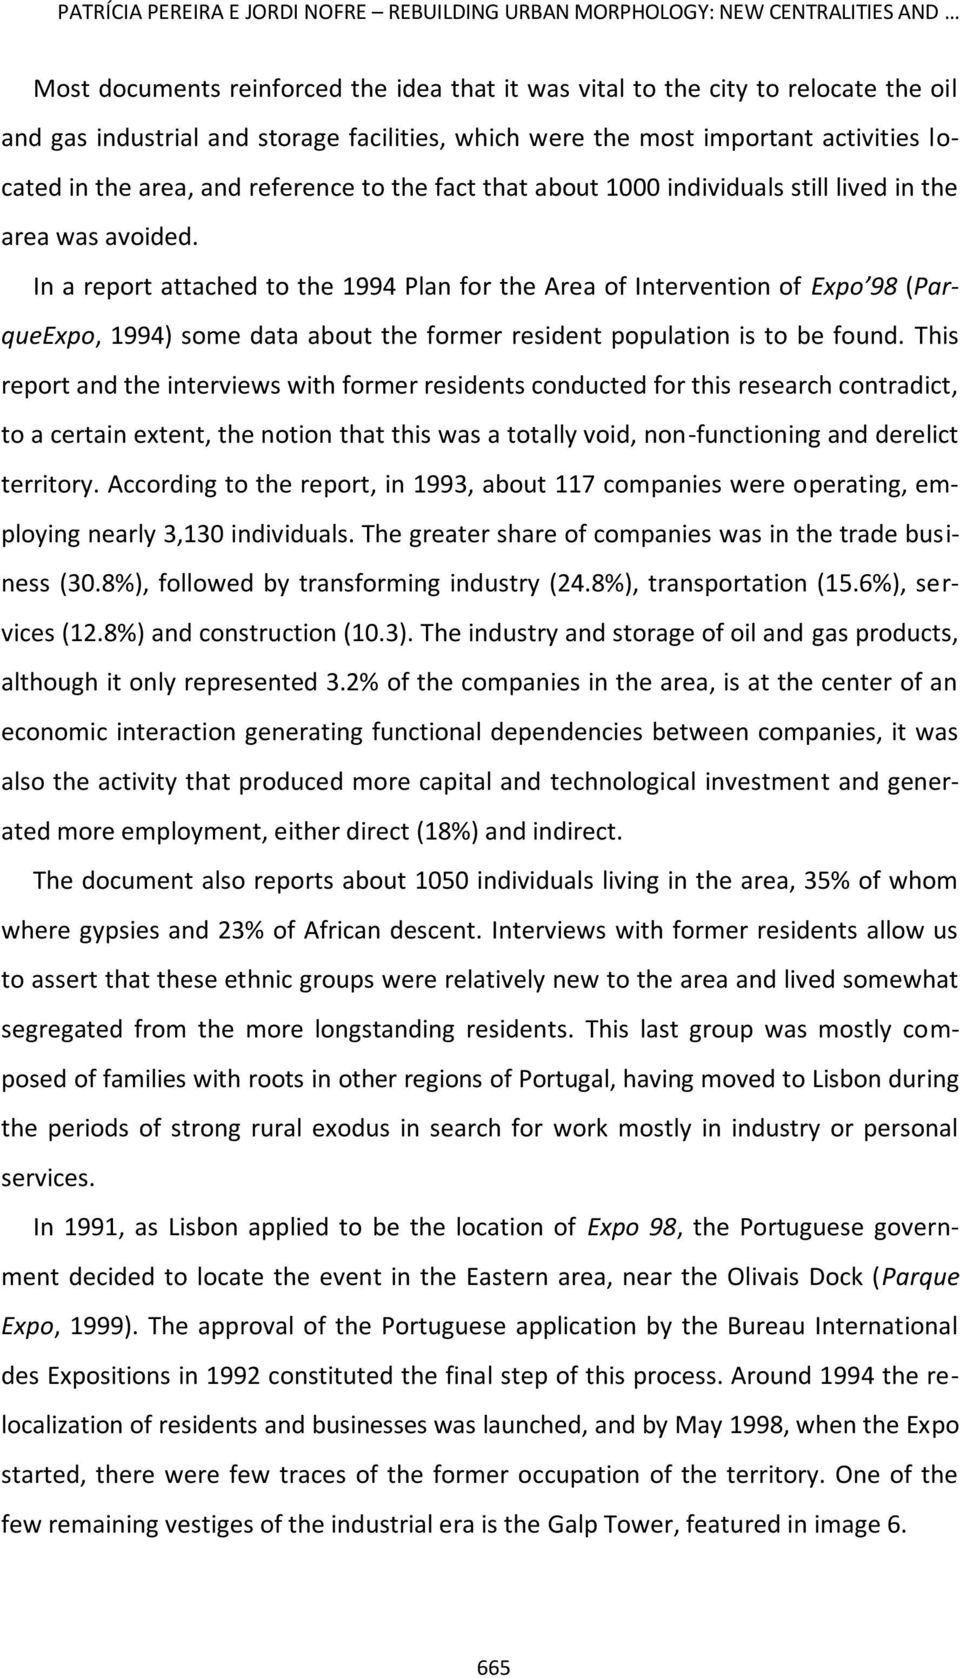 In a report attached to the 1994 Plan for the Area of Intervention of Expo 98 (ParqueExpo, 1994) some data about the former resident population is to be found.